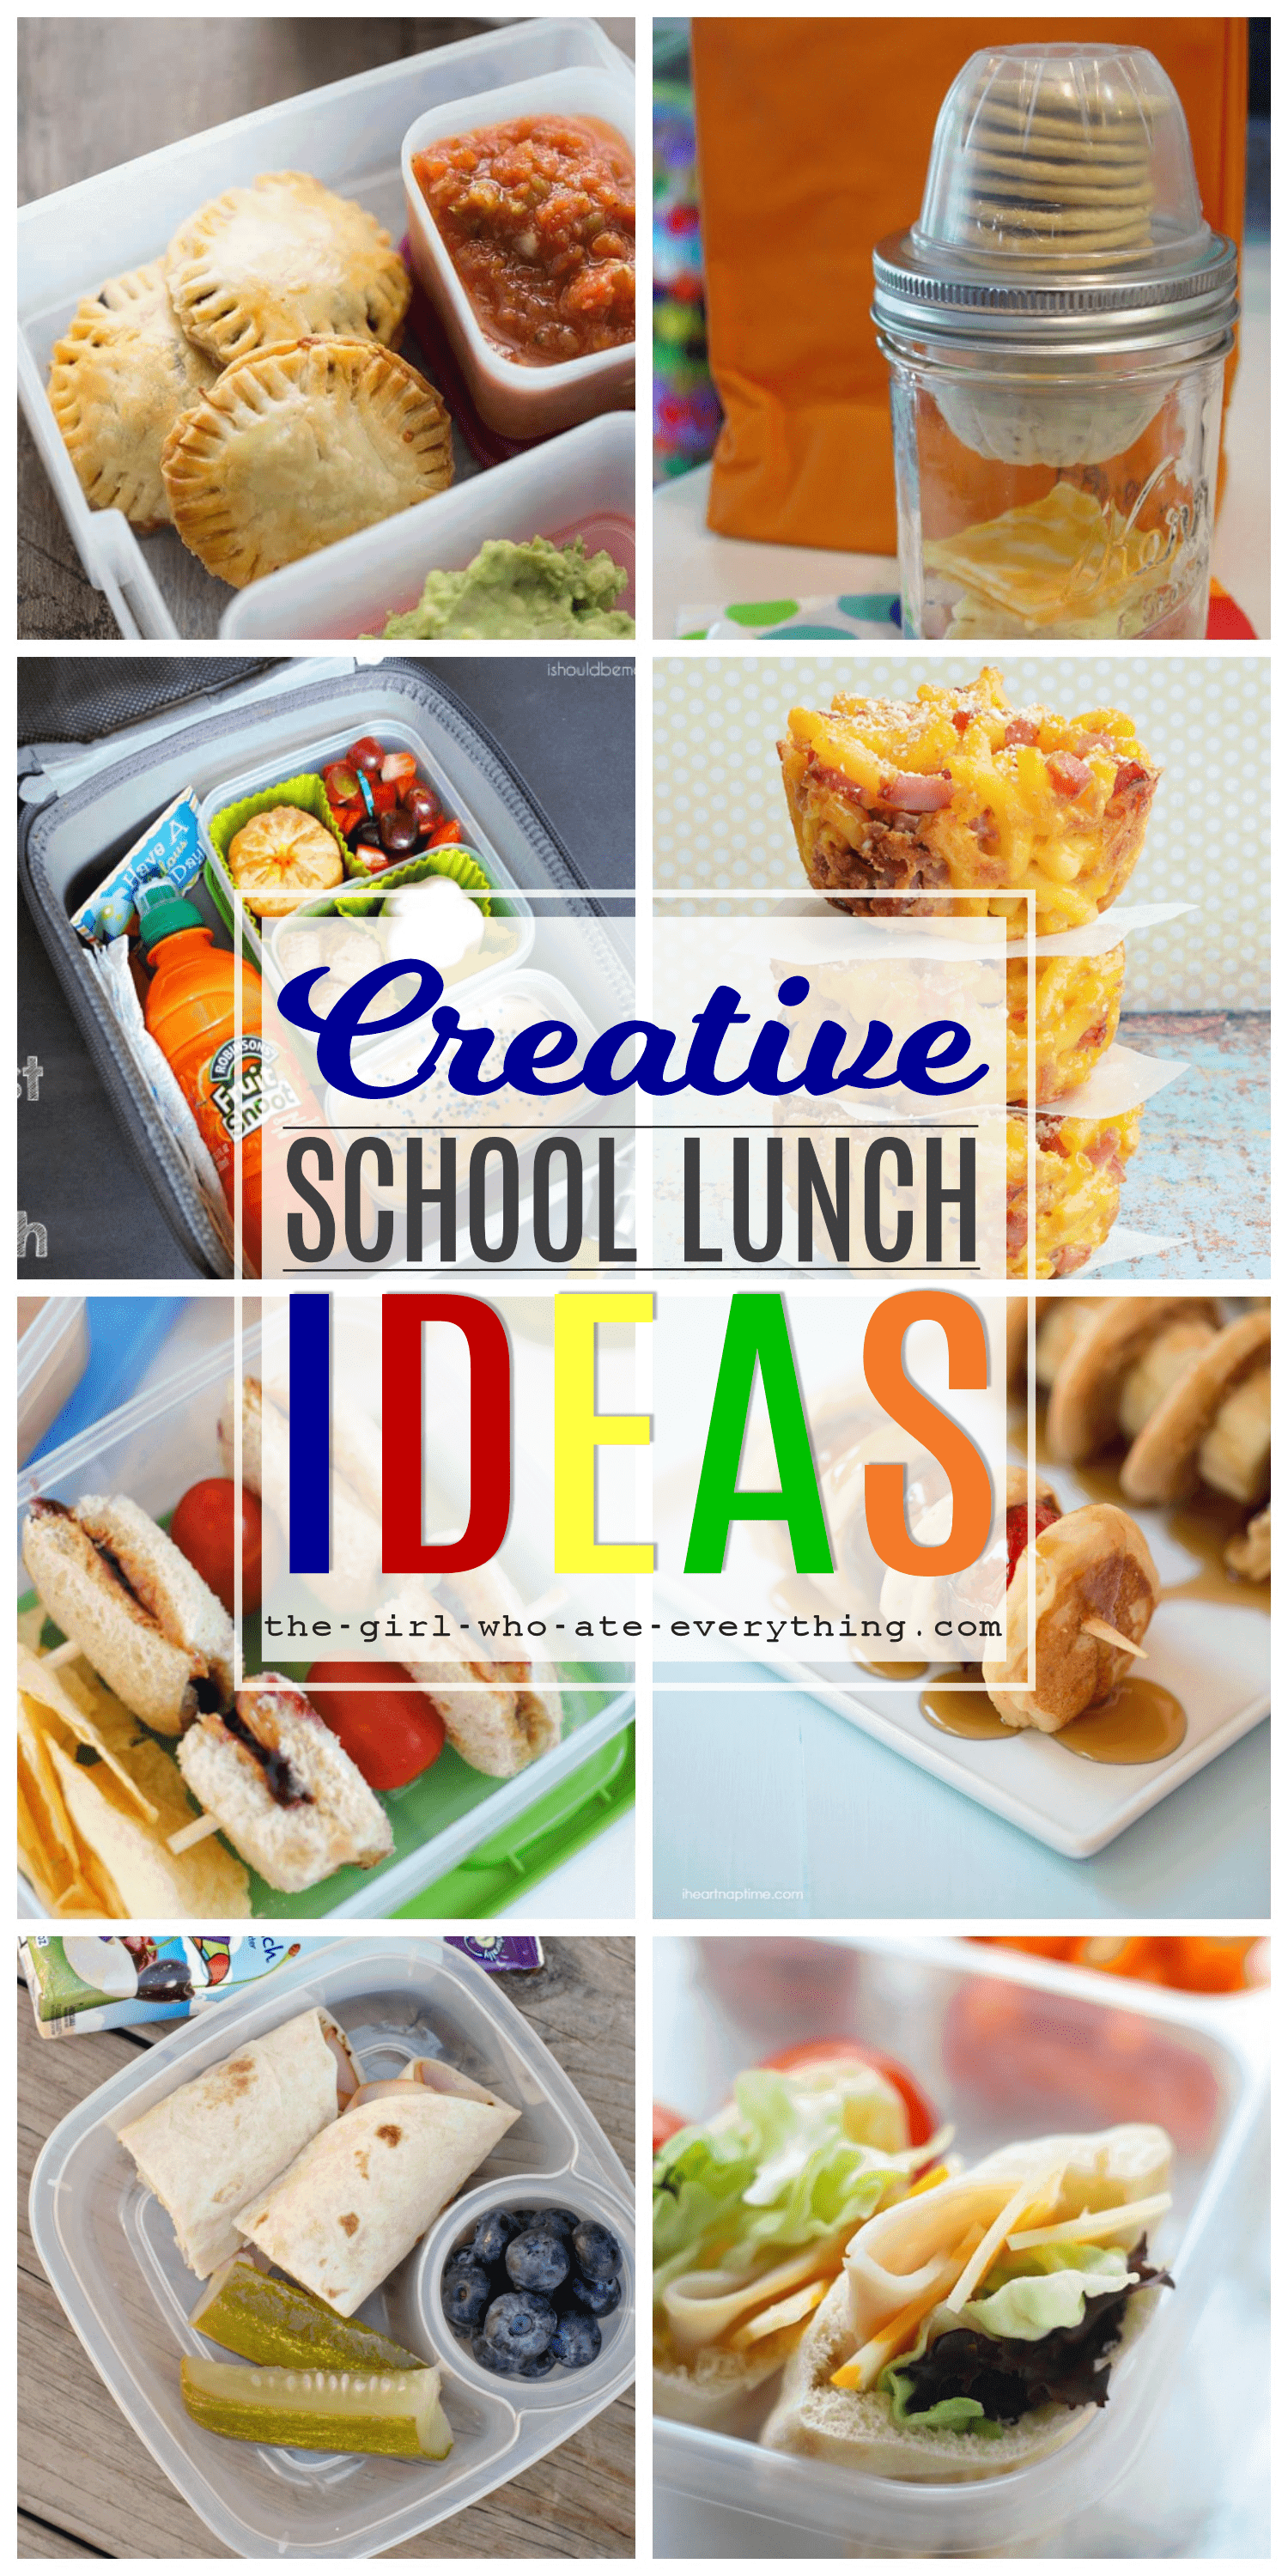 Creative School Lunch Ideas That Think Outside The Box